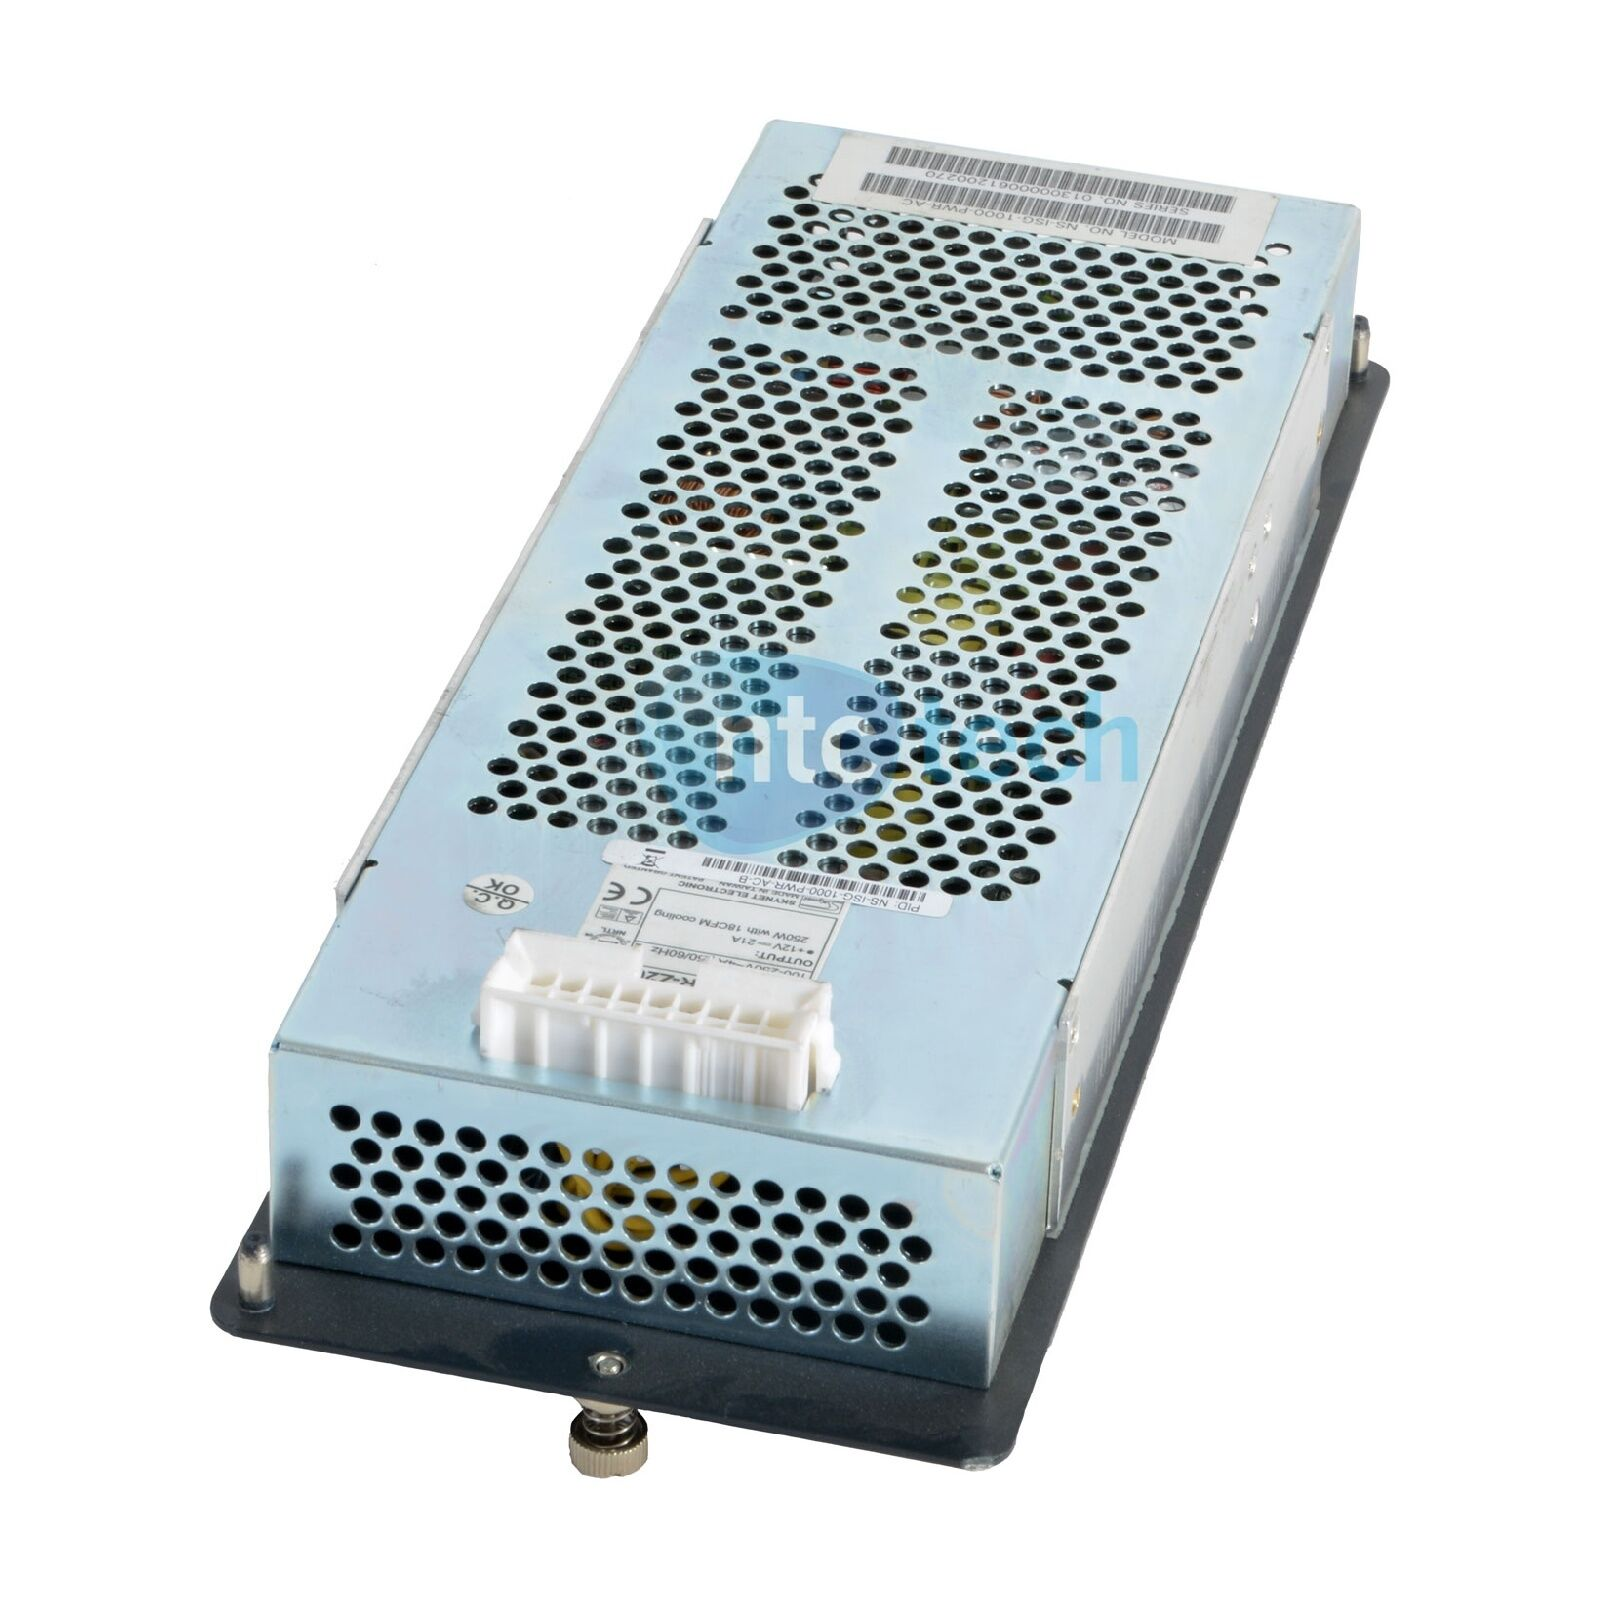 JUNIPER NS-ISG-1000-PWR-AC-B 250W Power Supply for NS-ISG-1000 ...